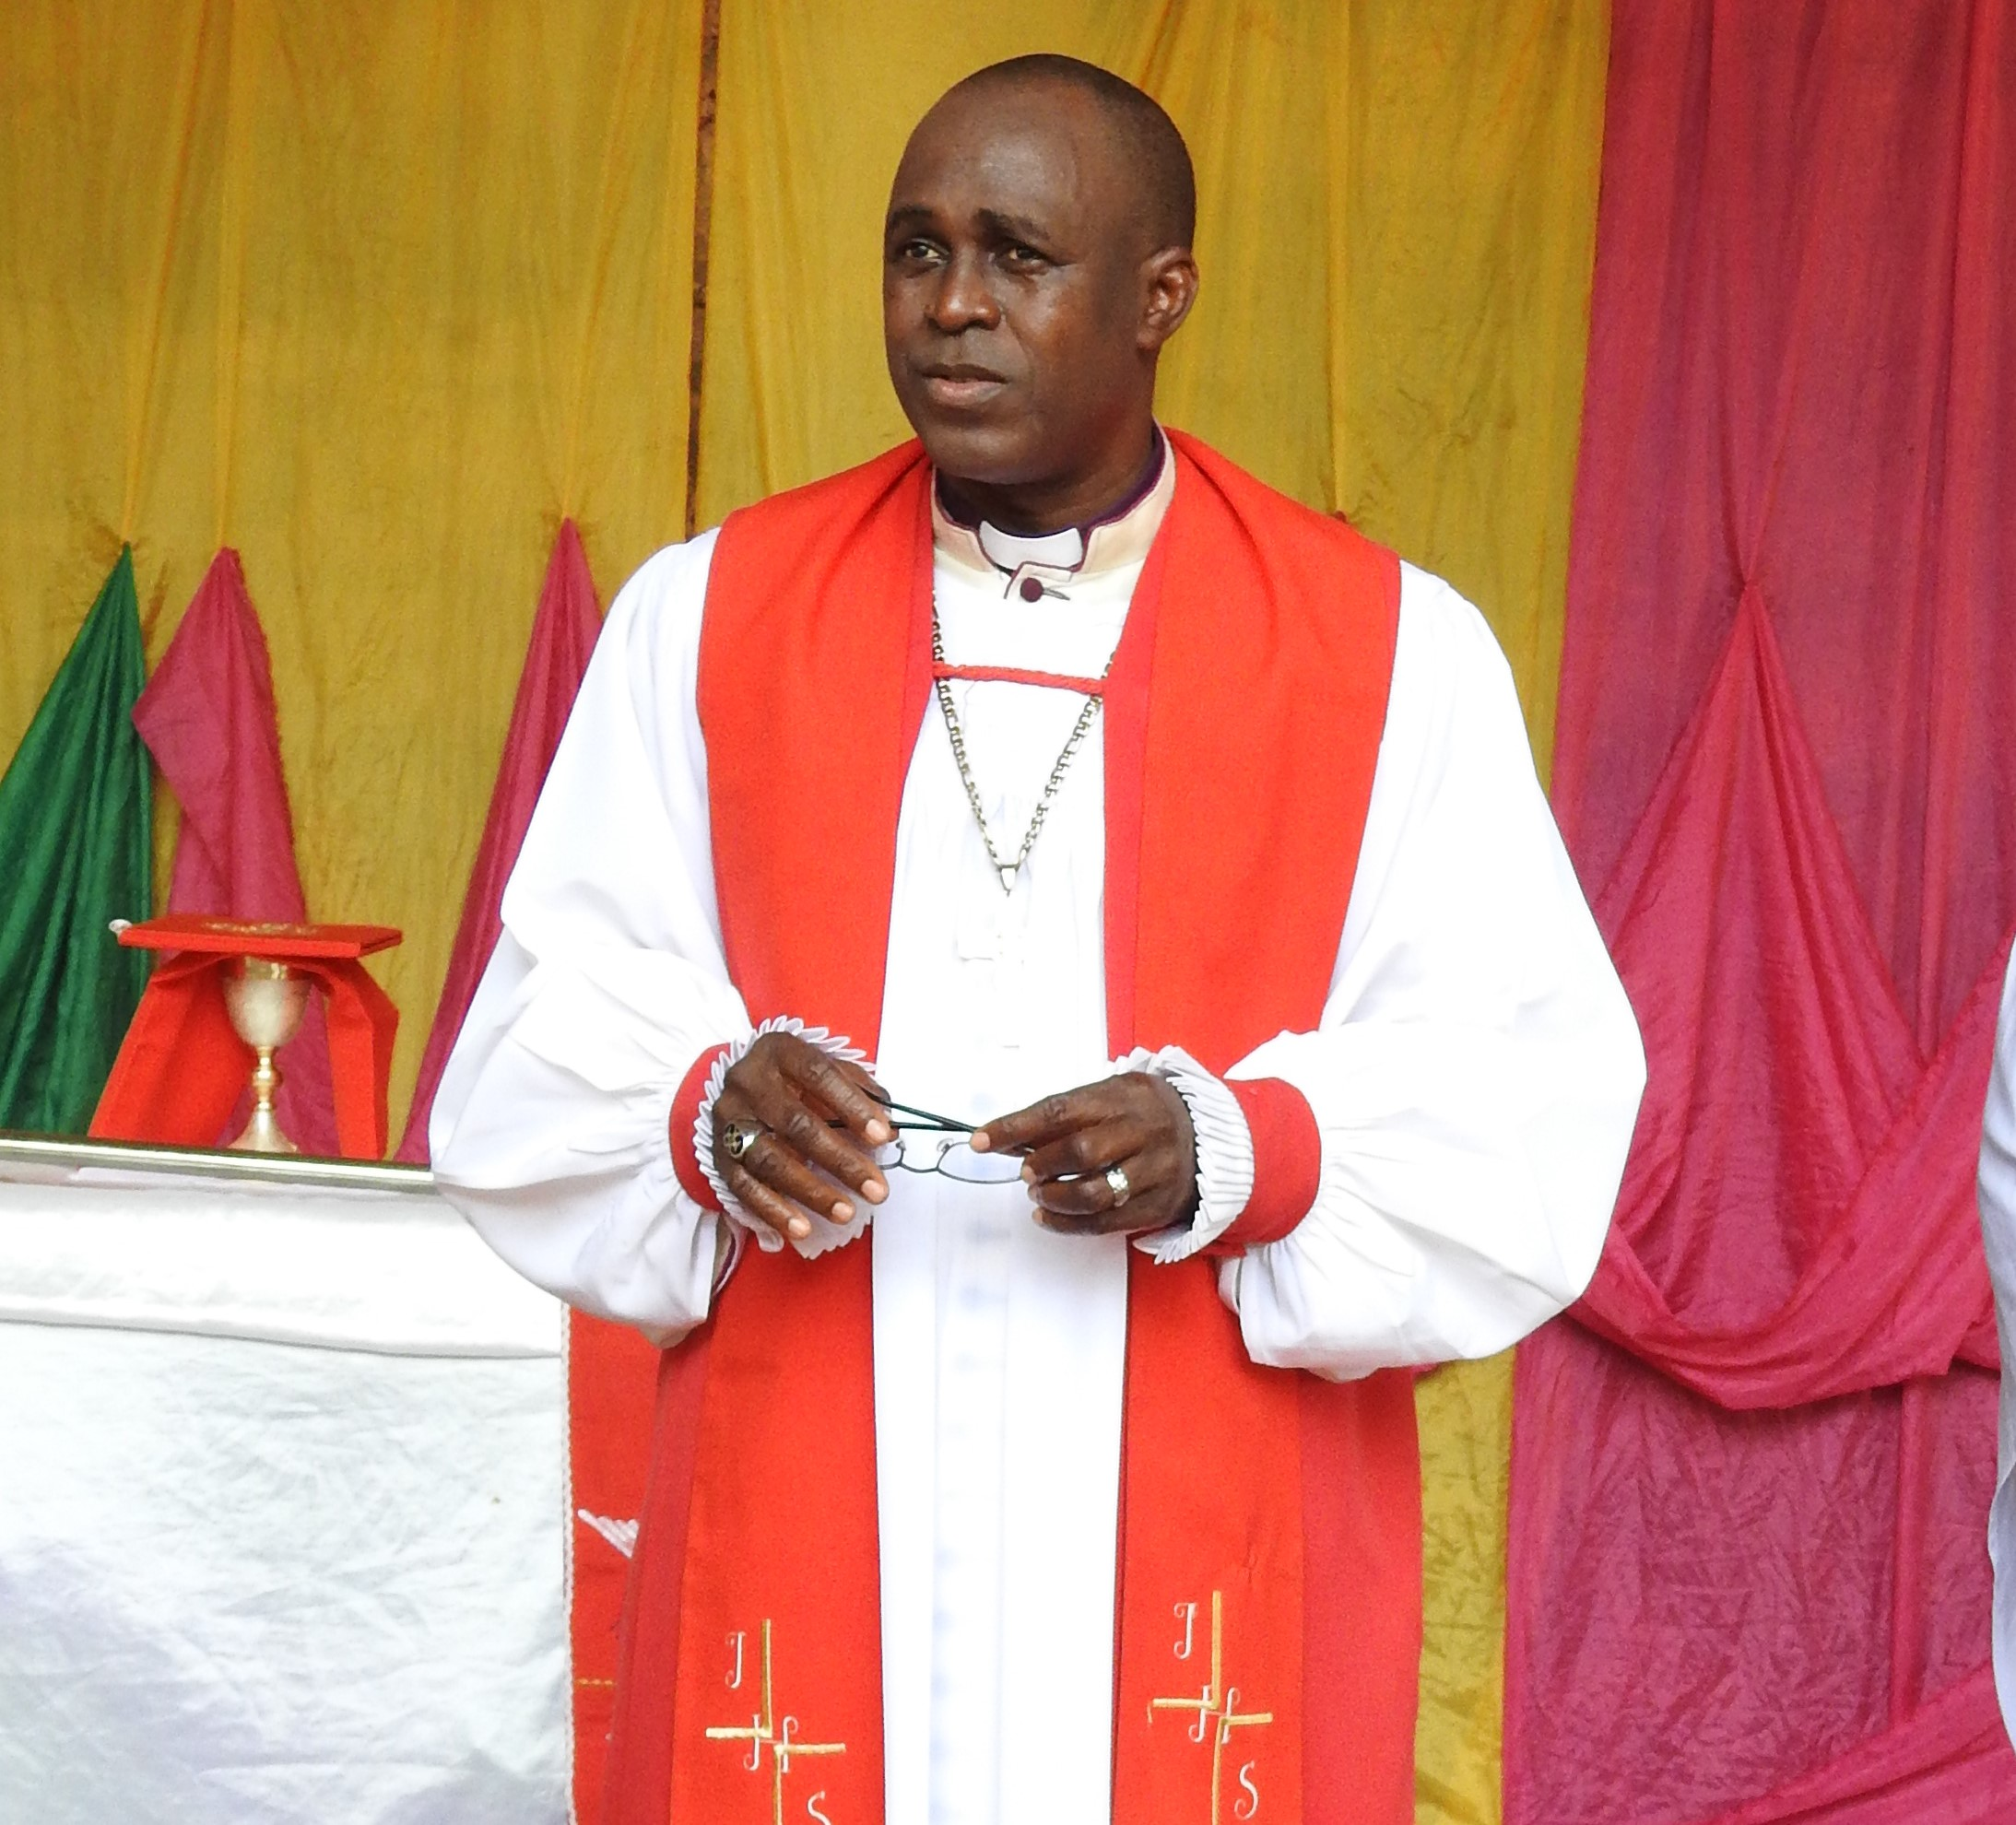 Bishop Agbo on missions